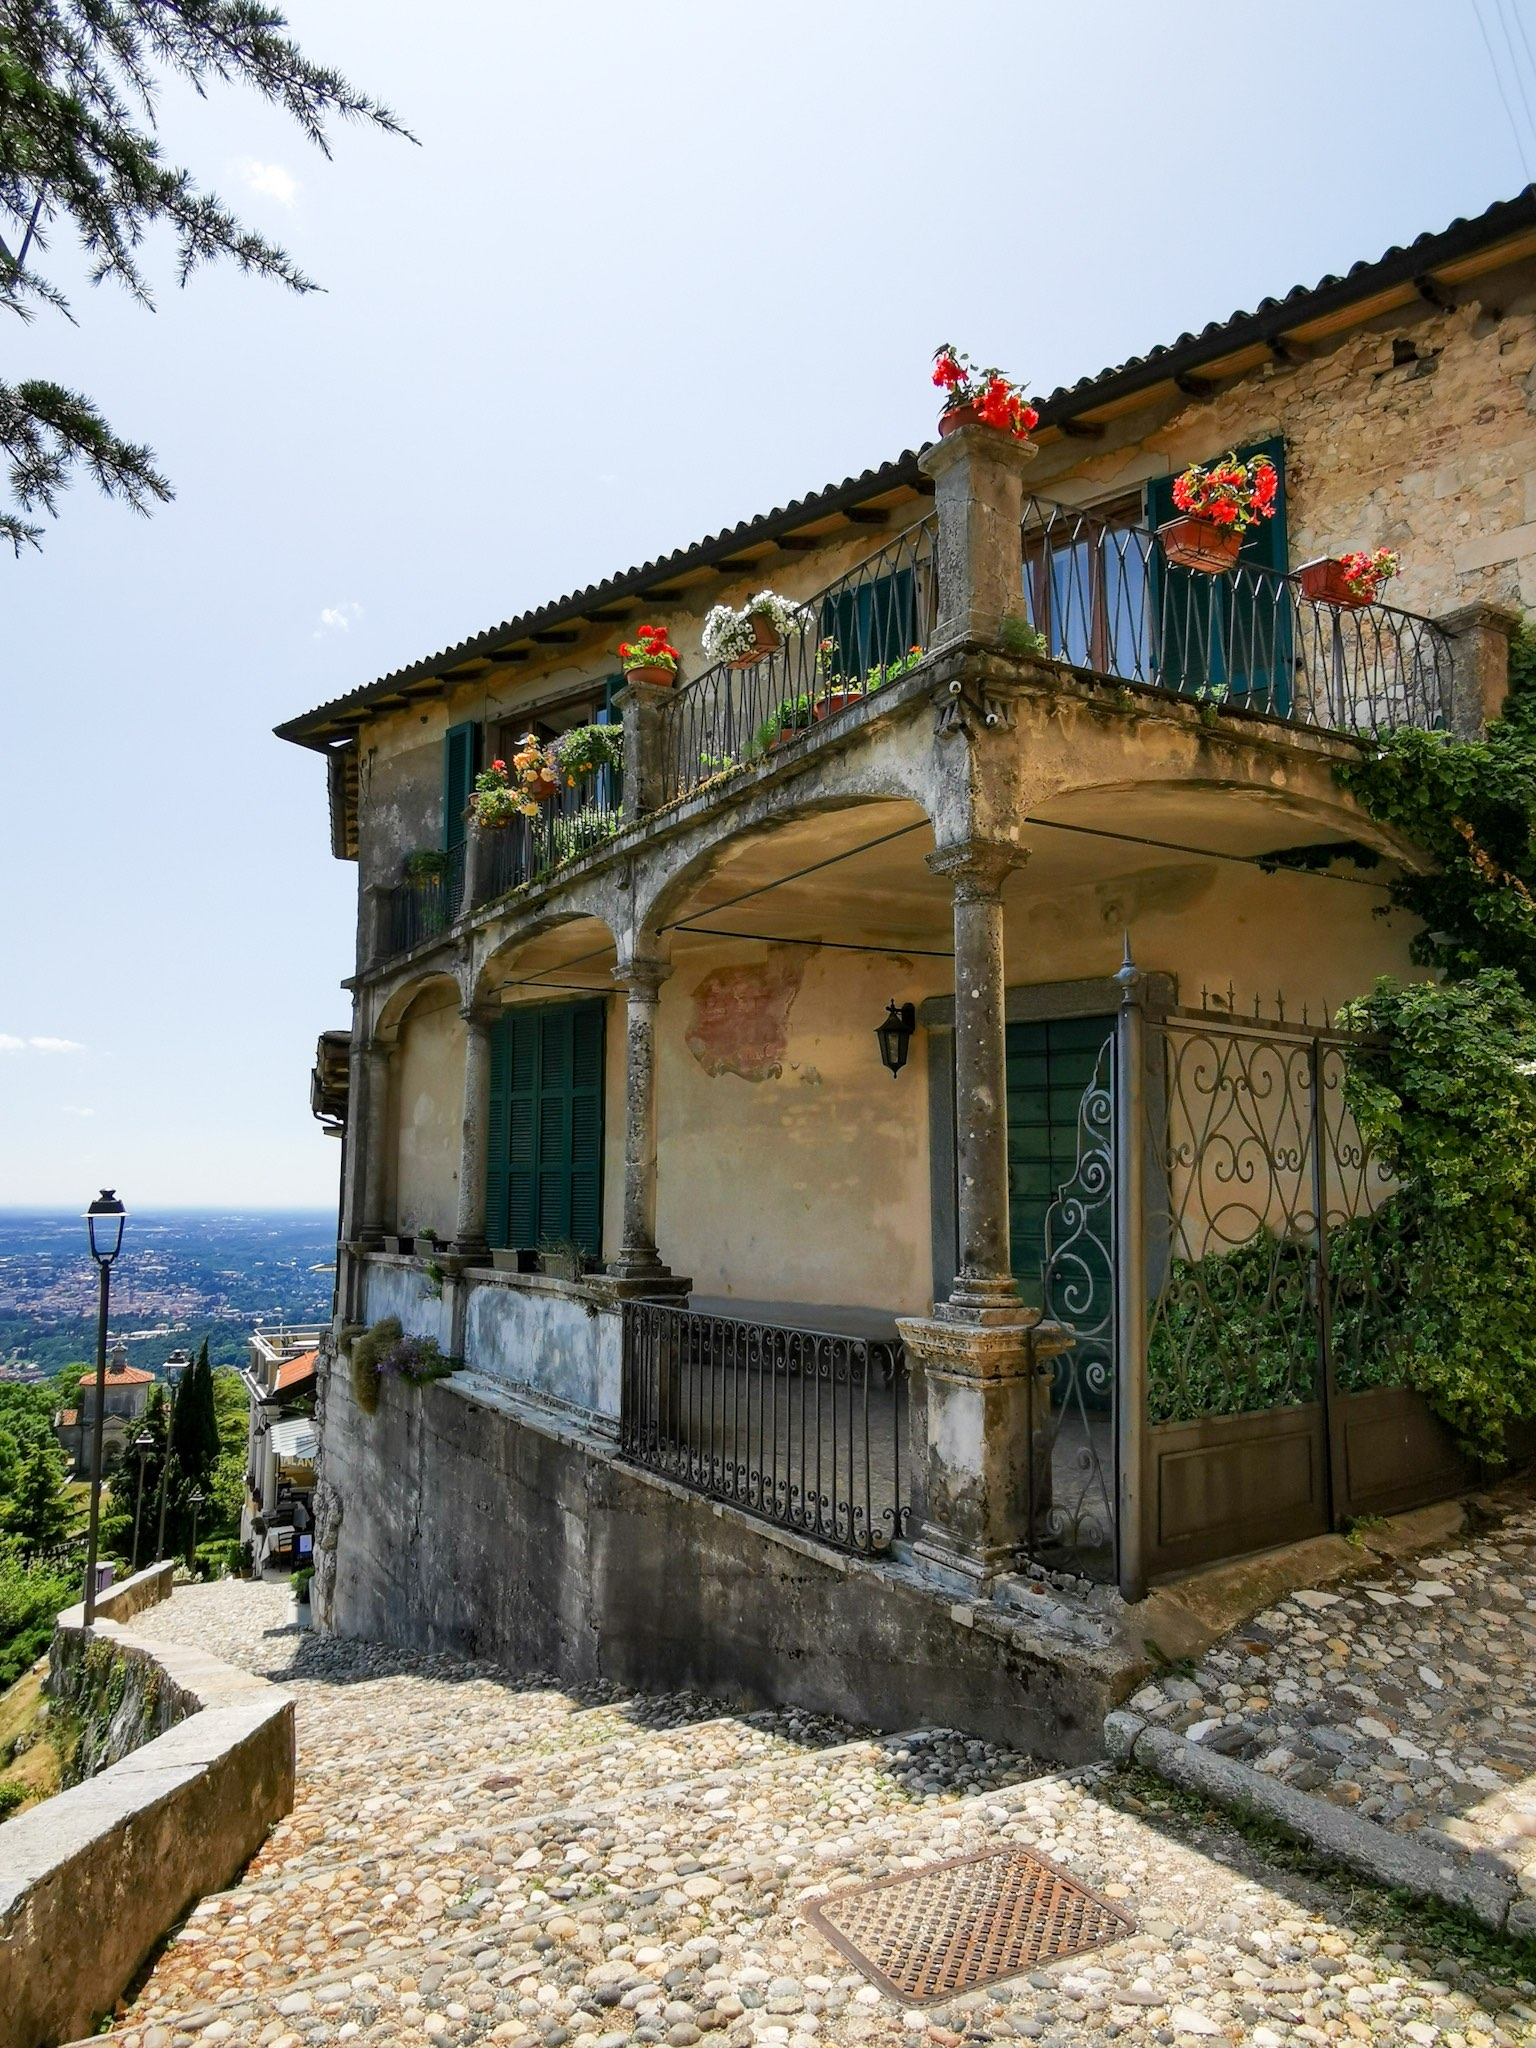 The village of Santa Maria del Monte near Varese